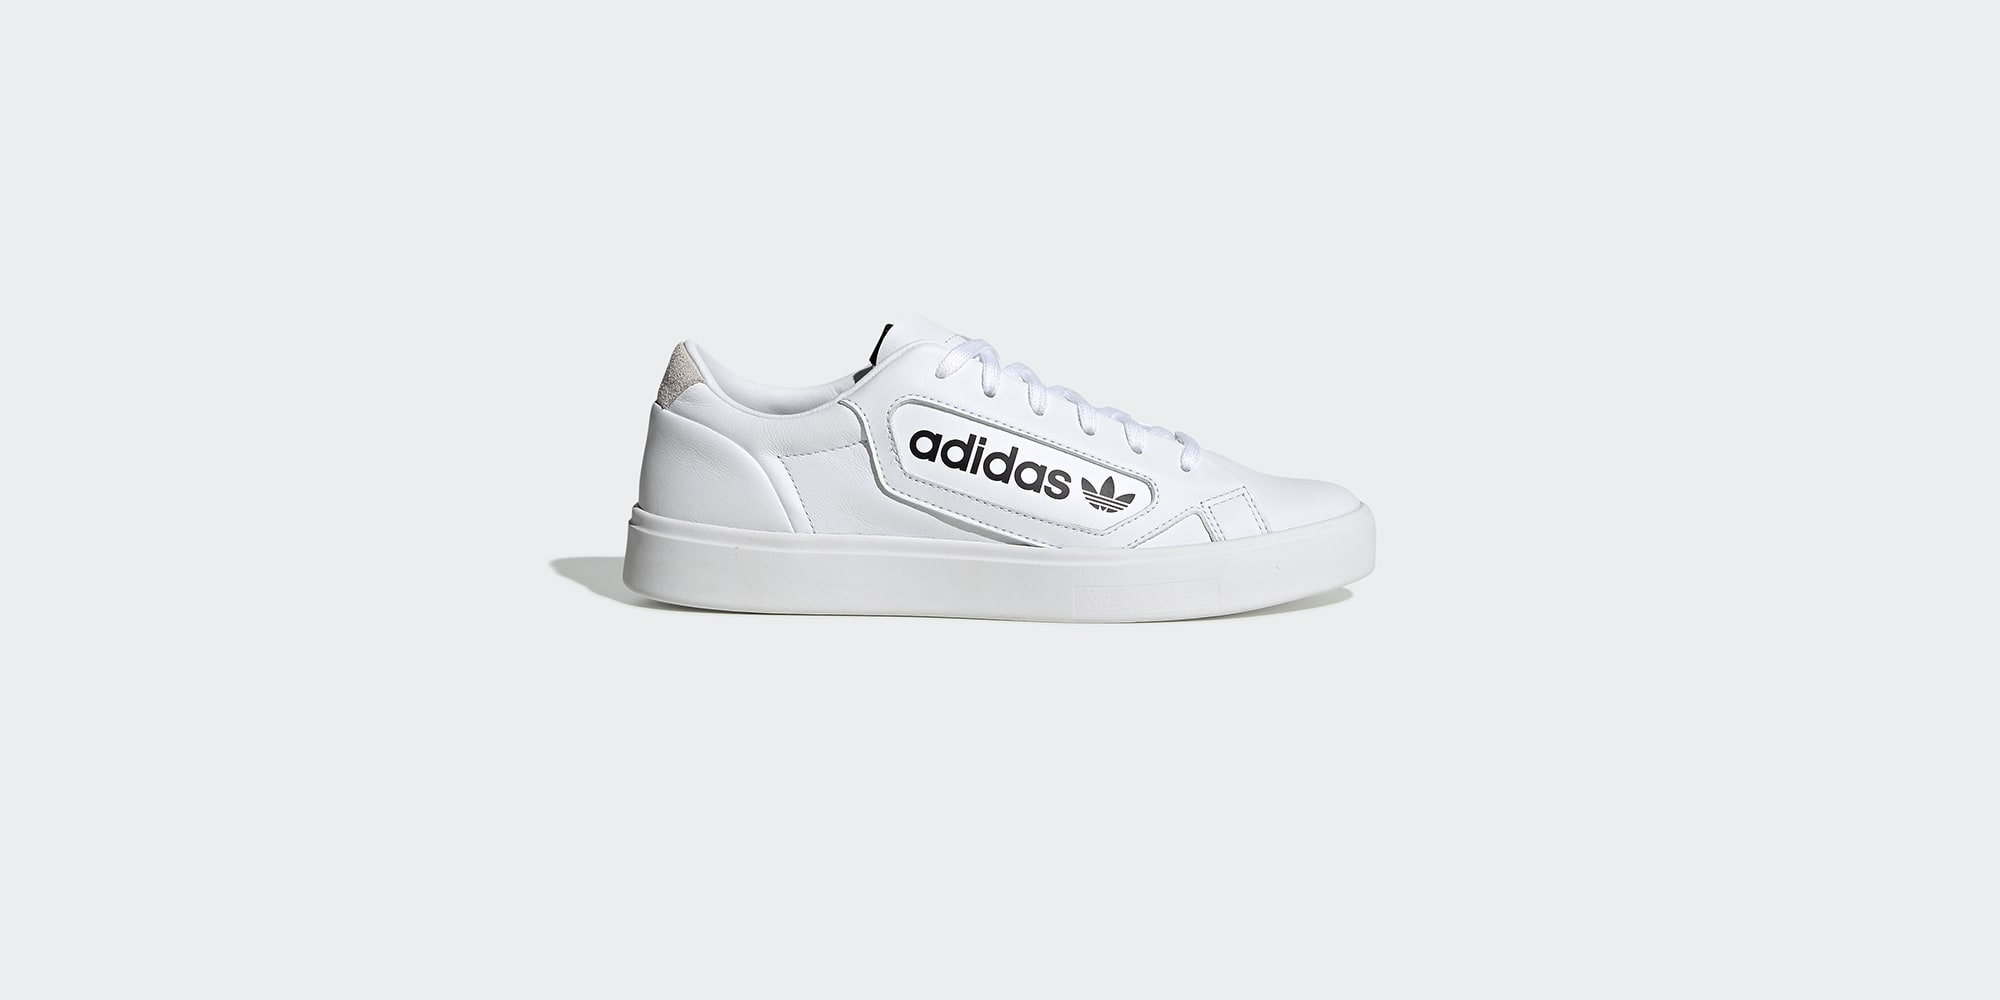 plataforma riega la flor vehículo  adidas online order Online Shopping for Women, Men, Kids Fashion &  Lifestyle|Free Delivery & Returns! -